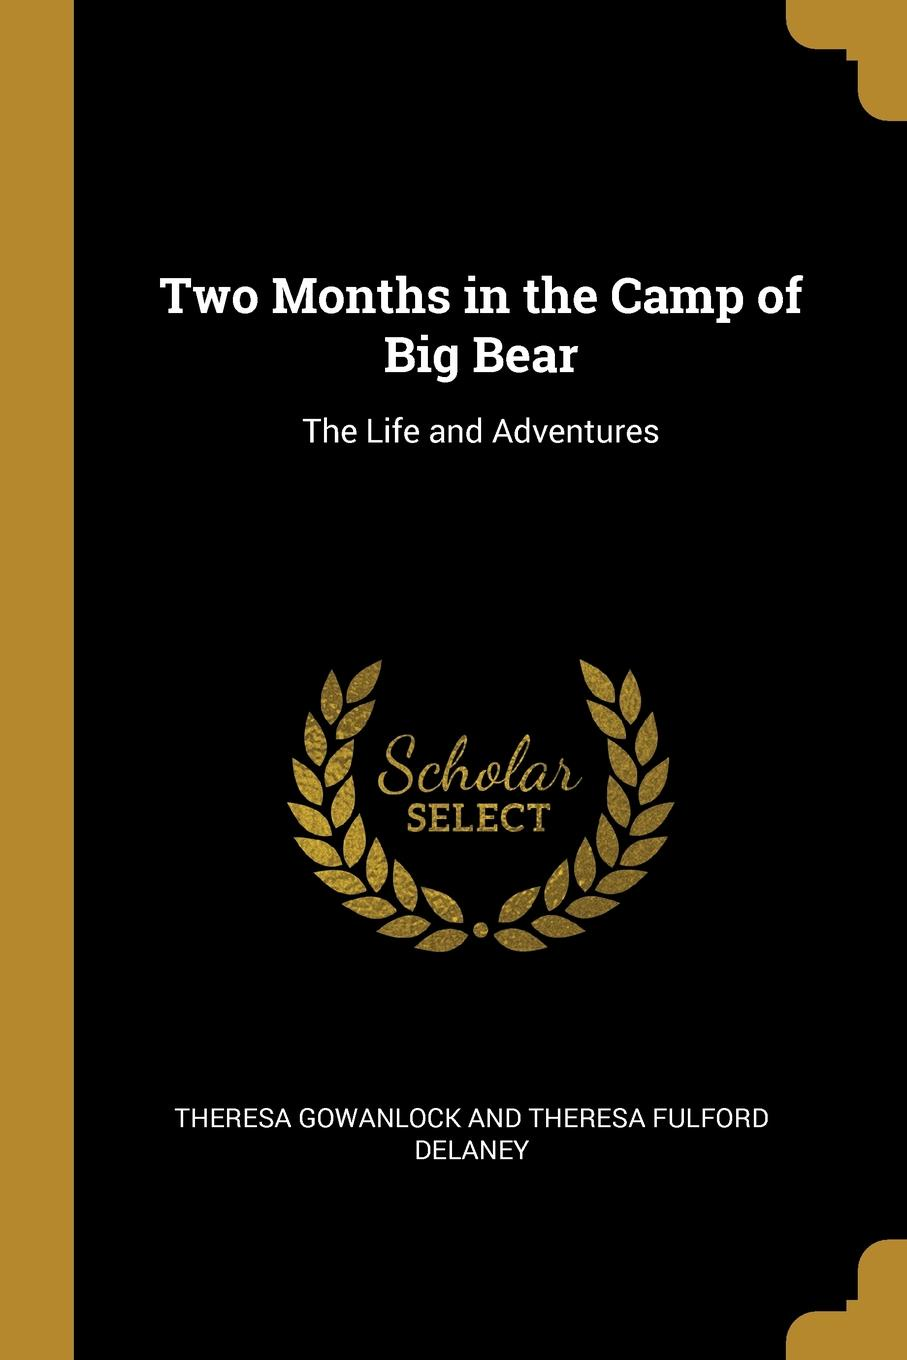 T Gowanlock and Theresa Fulford Delaney. Two Months in the Camp of Big Bear. The Life and Adventures